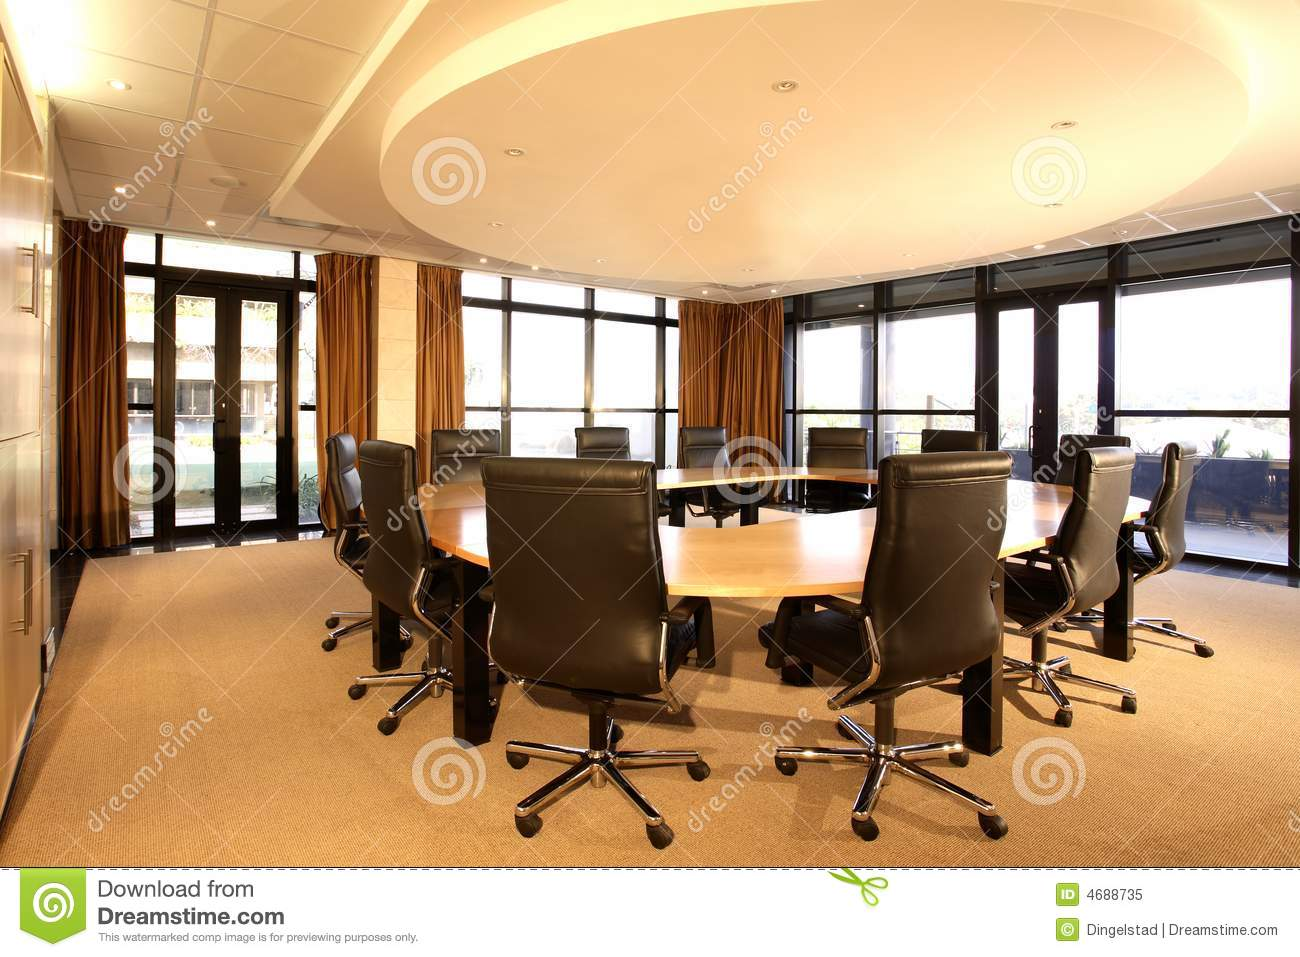 Furniture commercial furniture furniture furniture and furnishings - Boardroom Royalty Free Stock Photo Image 4688735